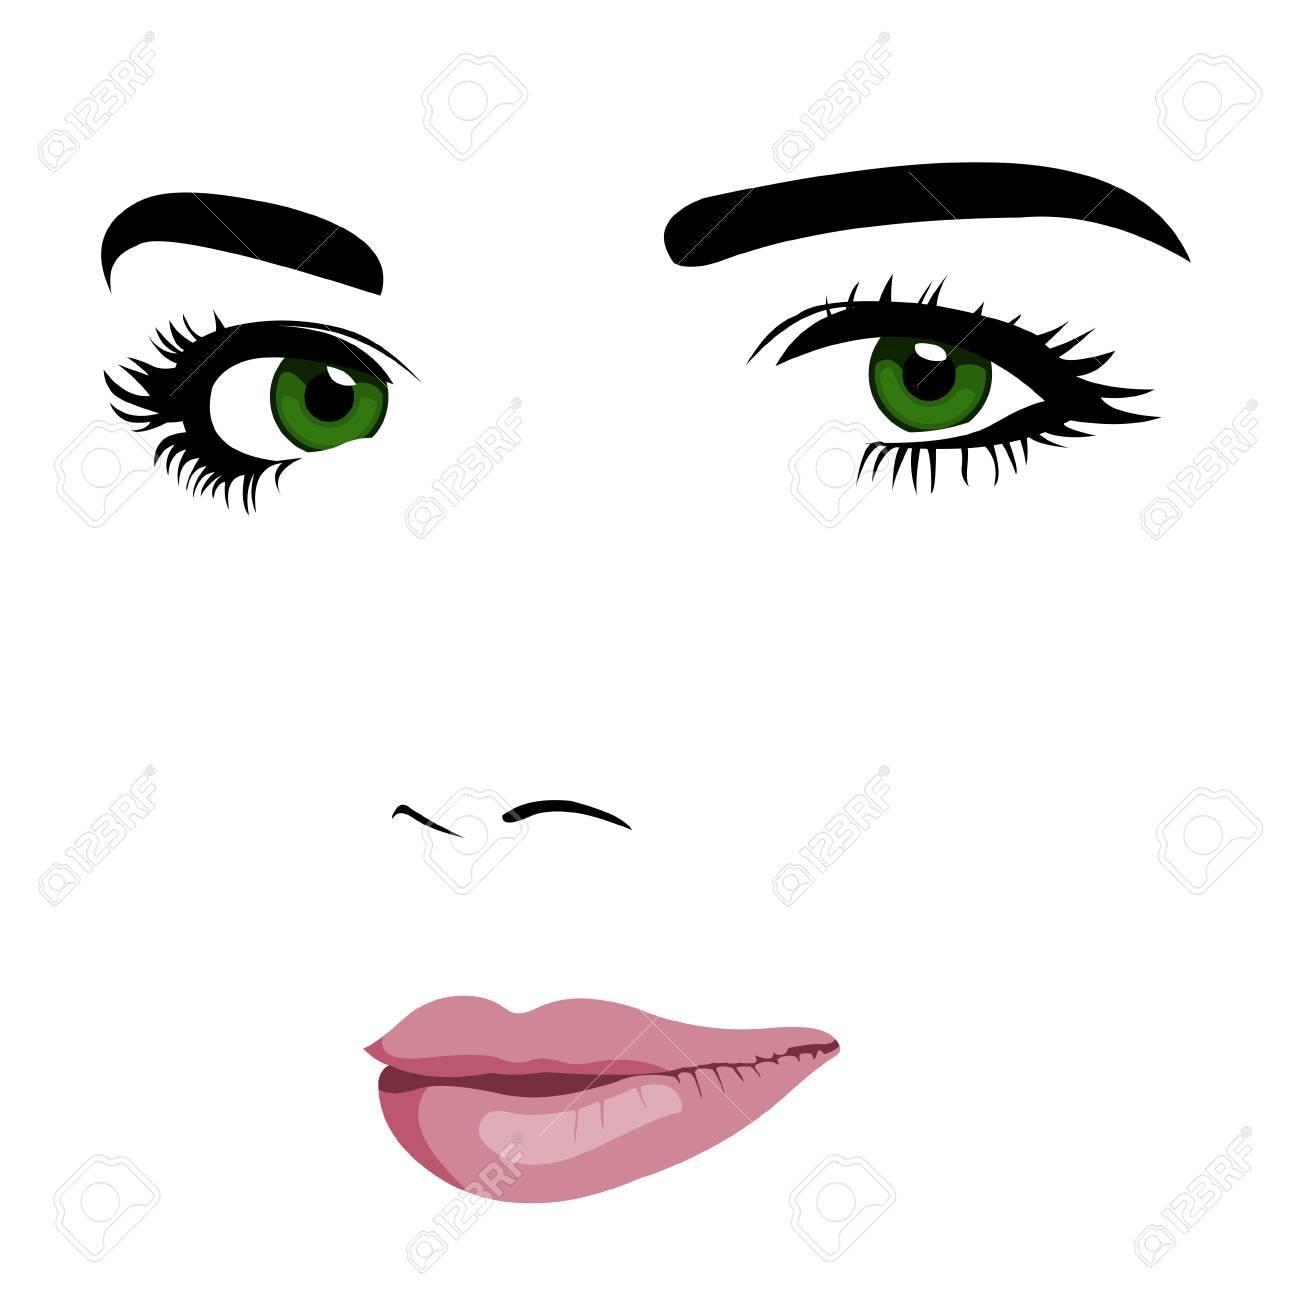 Minimalism Pop Art Style Of Young Green Eye Woman Face Easy Royalty Free Cliparts Vectors And Stock Illustration Image 75167527